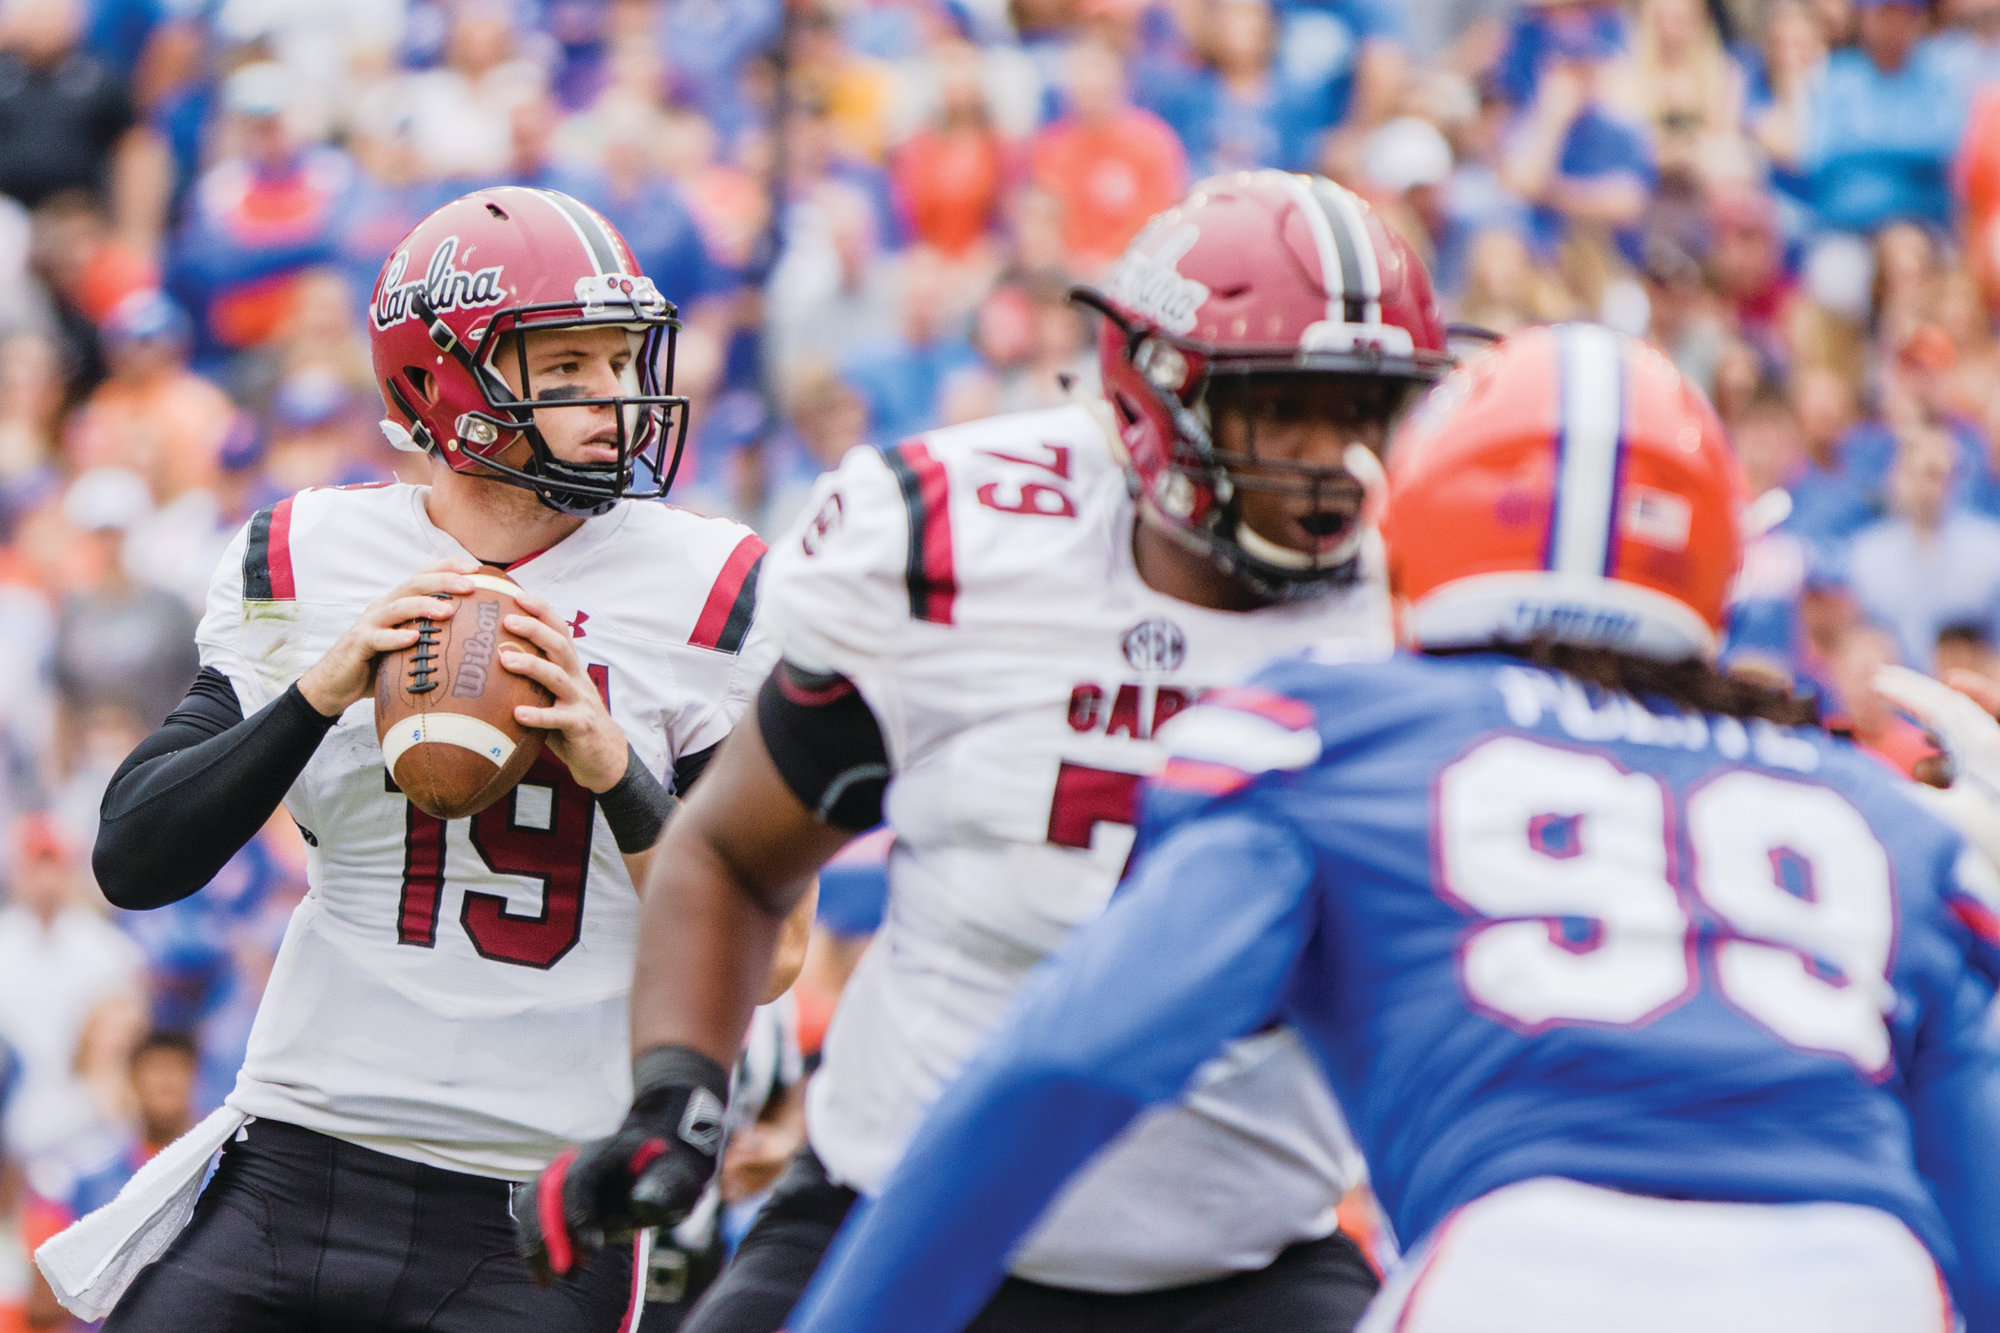 South Carolina quarterback Jake Bentley looks to pass during the Gamecocks' 35-31 loss to Florida earlier this season. Bentley and the Gamecocks will have their hands full when they travel to Death Valley on Saturday to take on the second-ranked Clemson Tigers, who field one of the nation's top defenses.